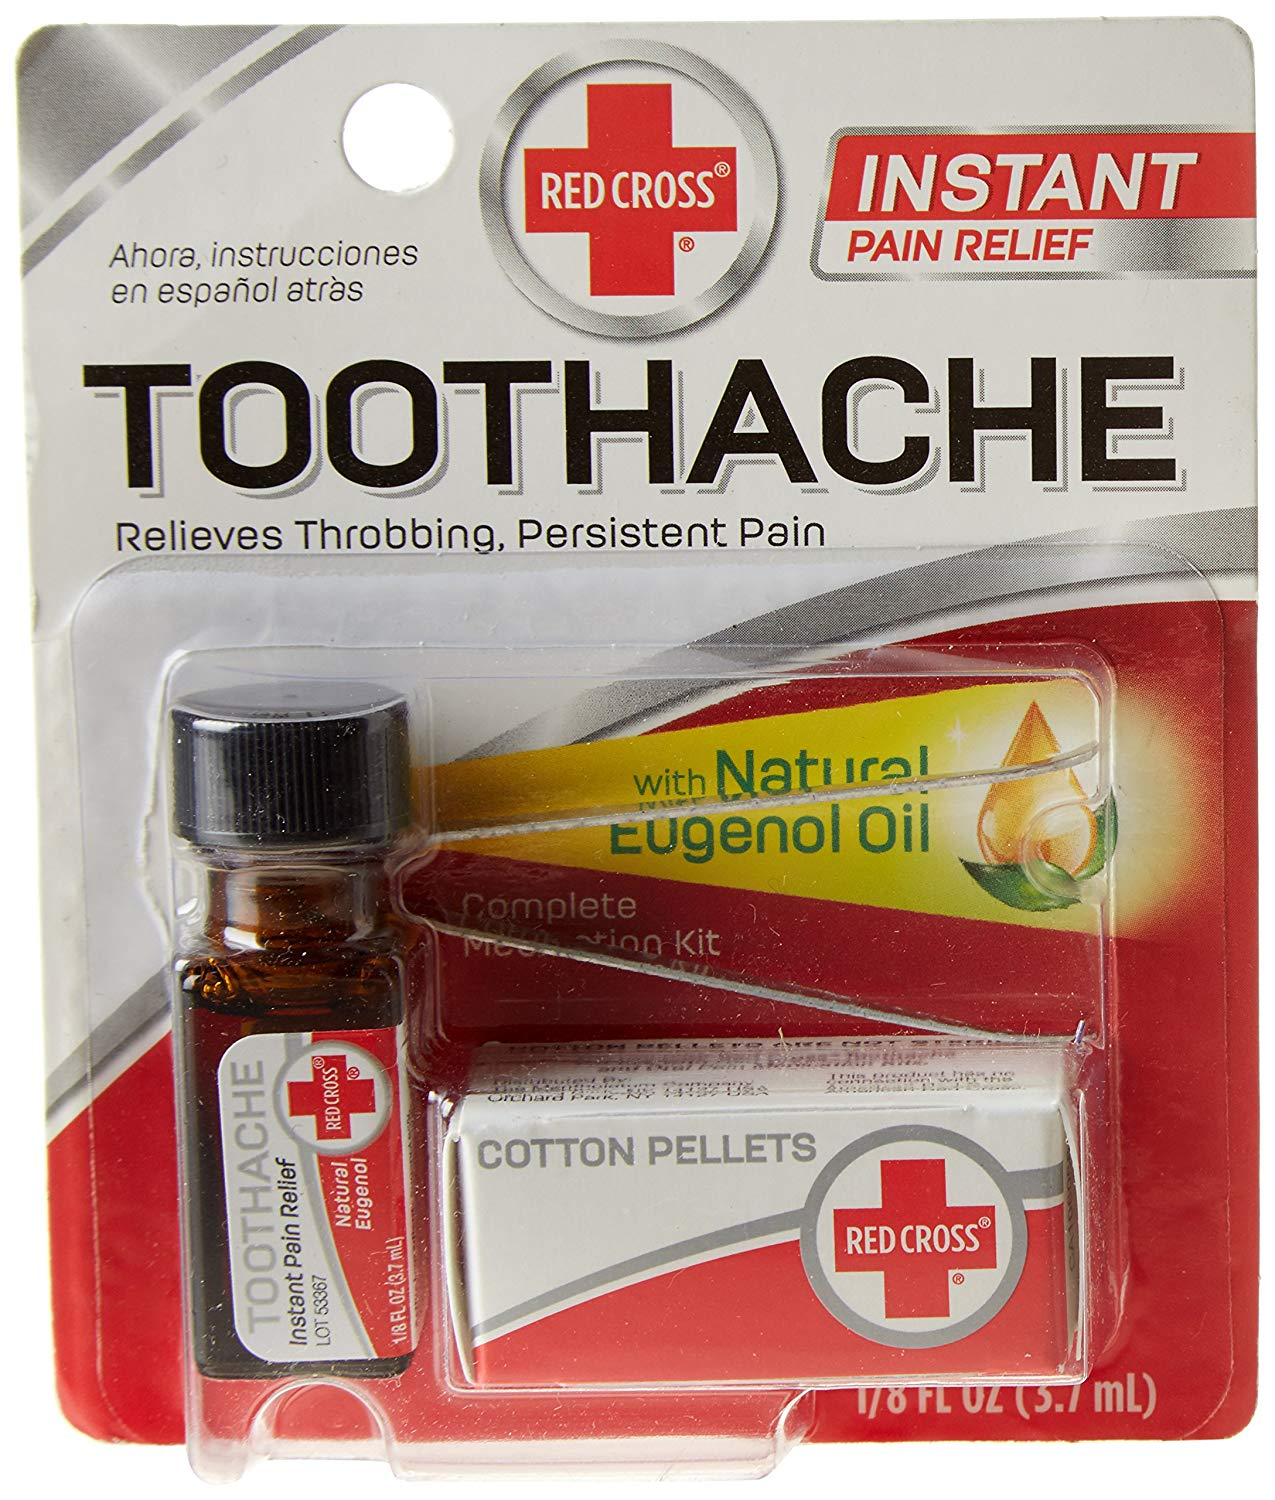 ache, get rid of toothache, how to, kill tooth nerve, medicine, oil, Orajel, pain, pains, relief, s